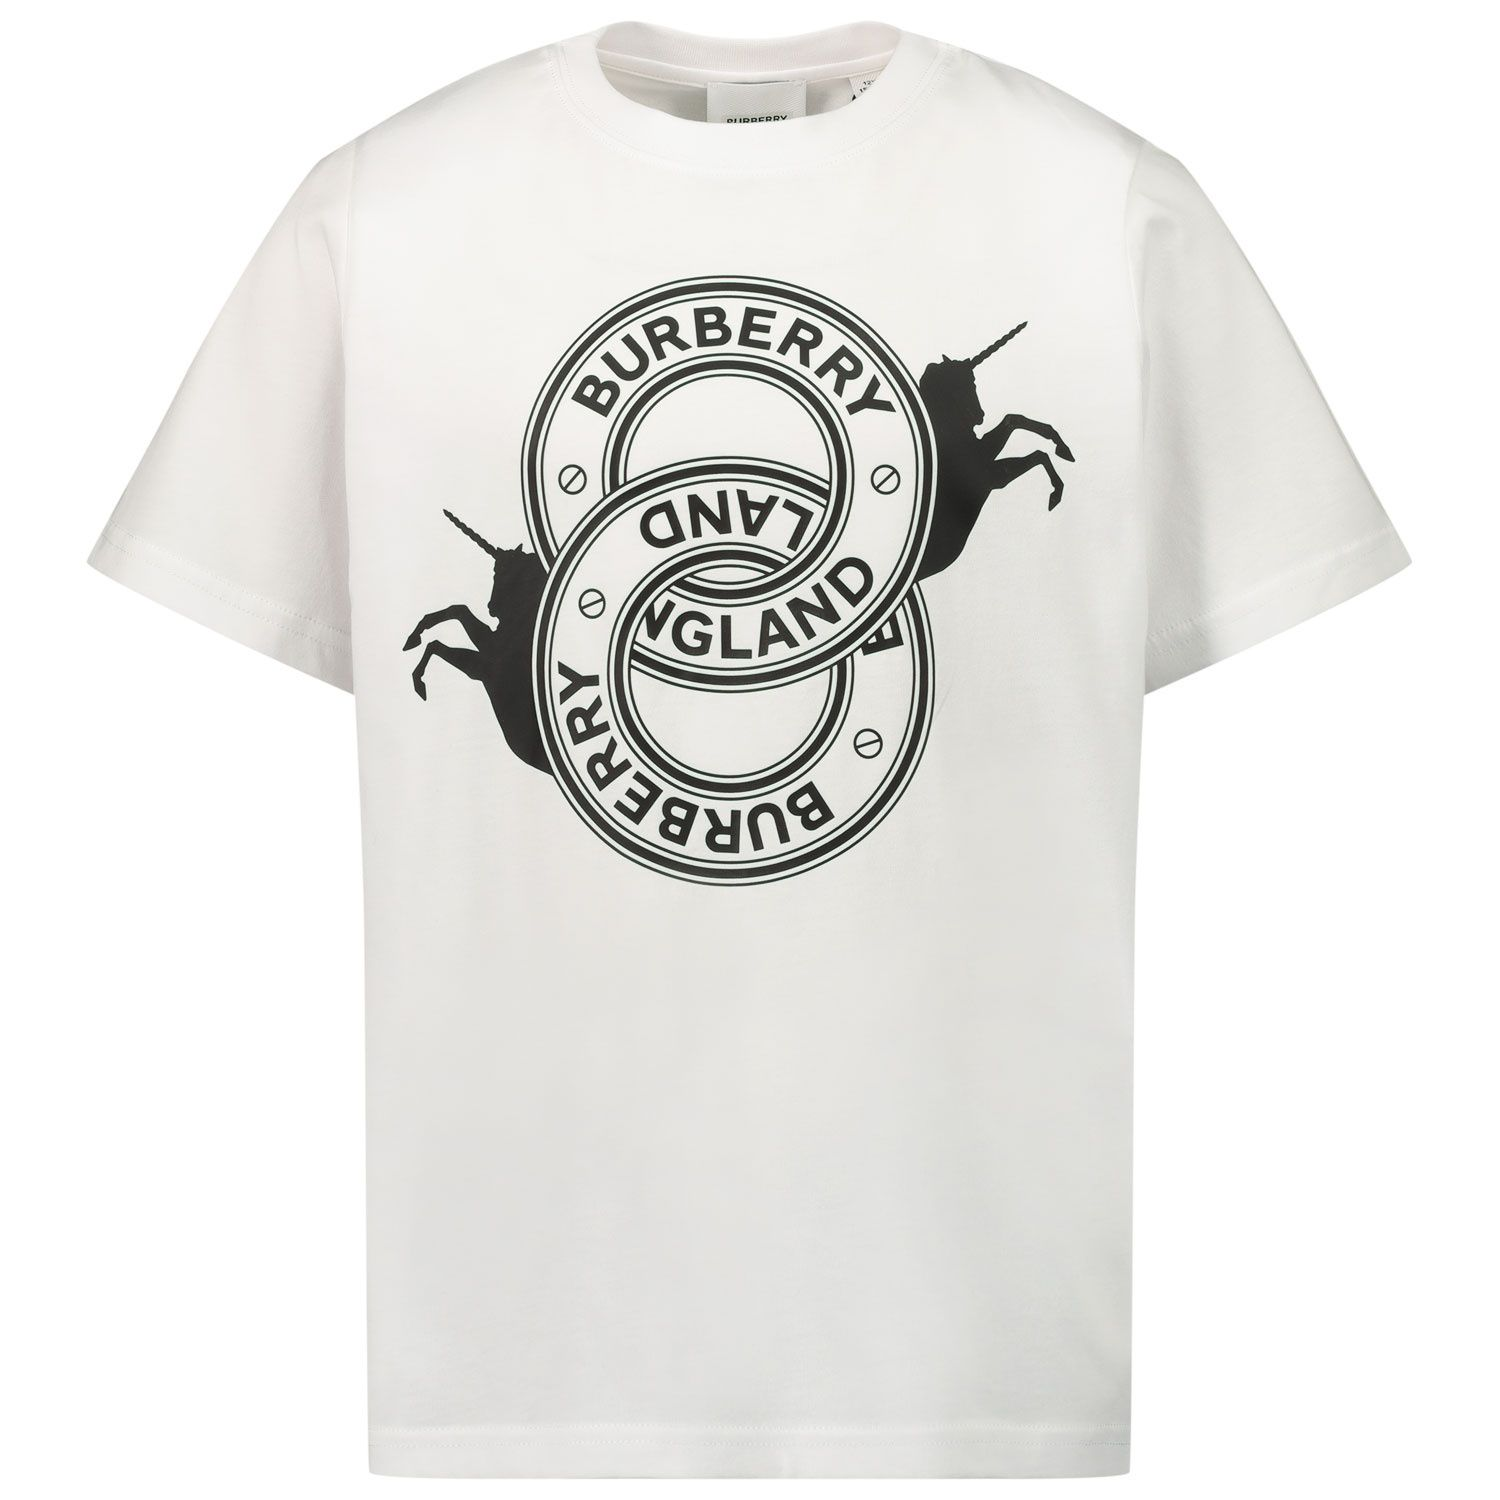 Picture of Burberry 8032830 kids t-shirt white